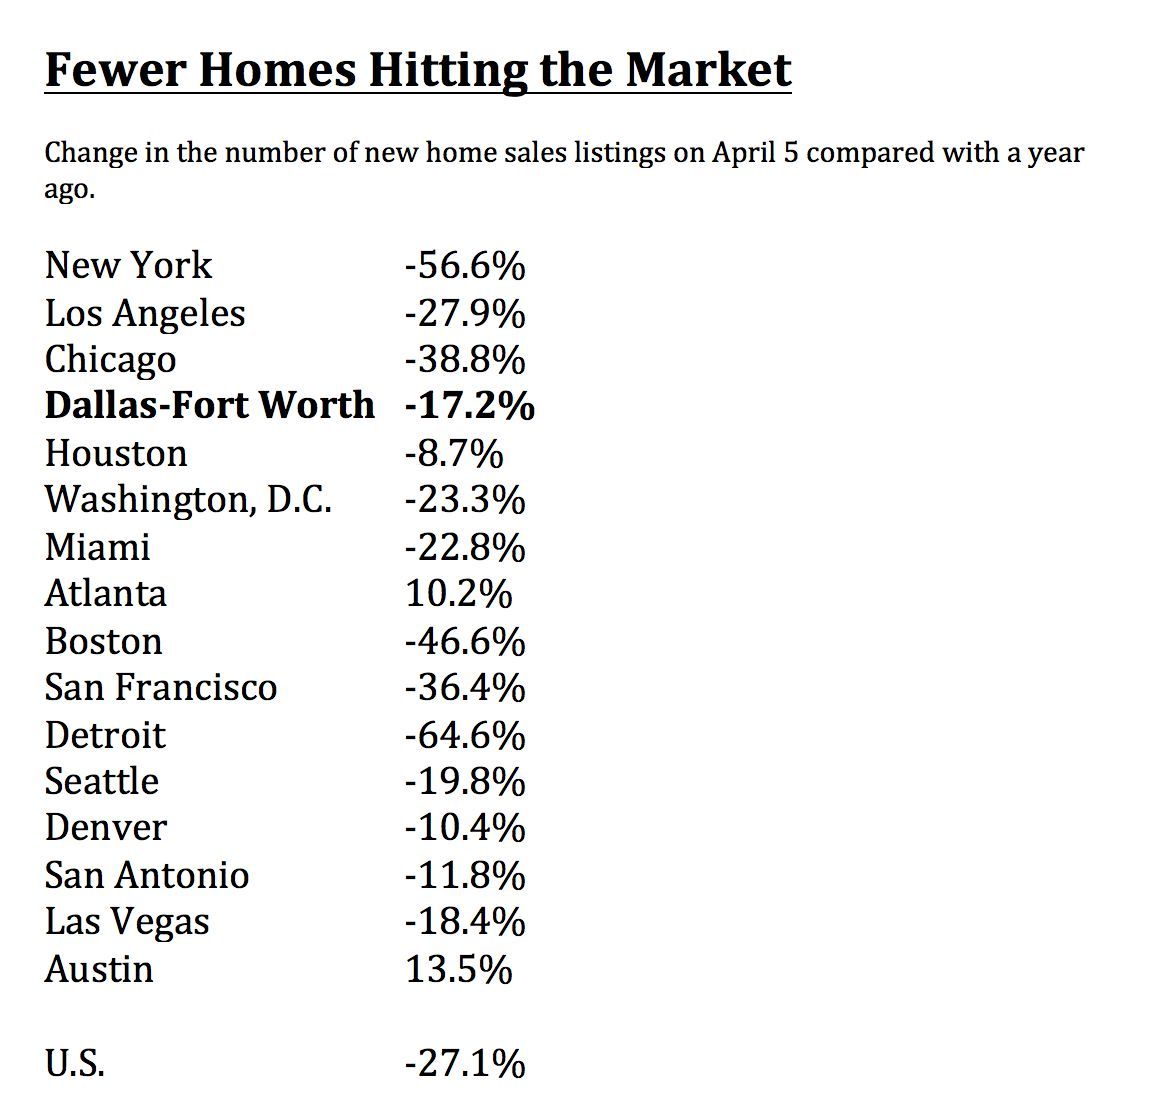 Fewer homes are coming up for sale.